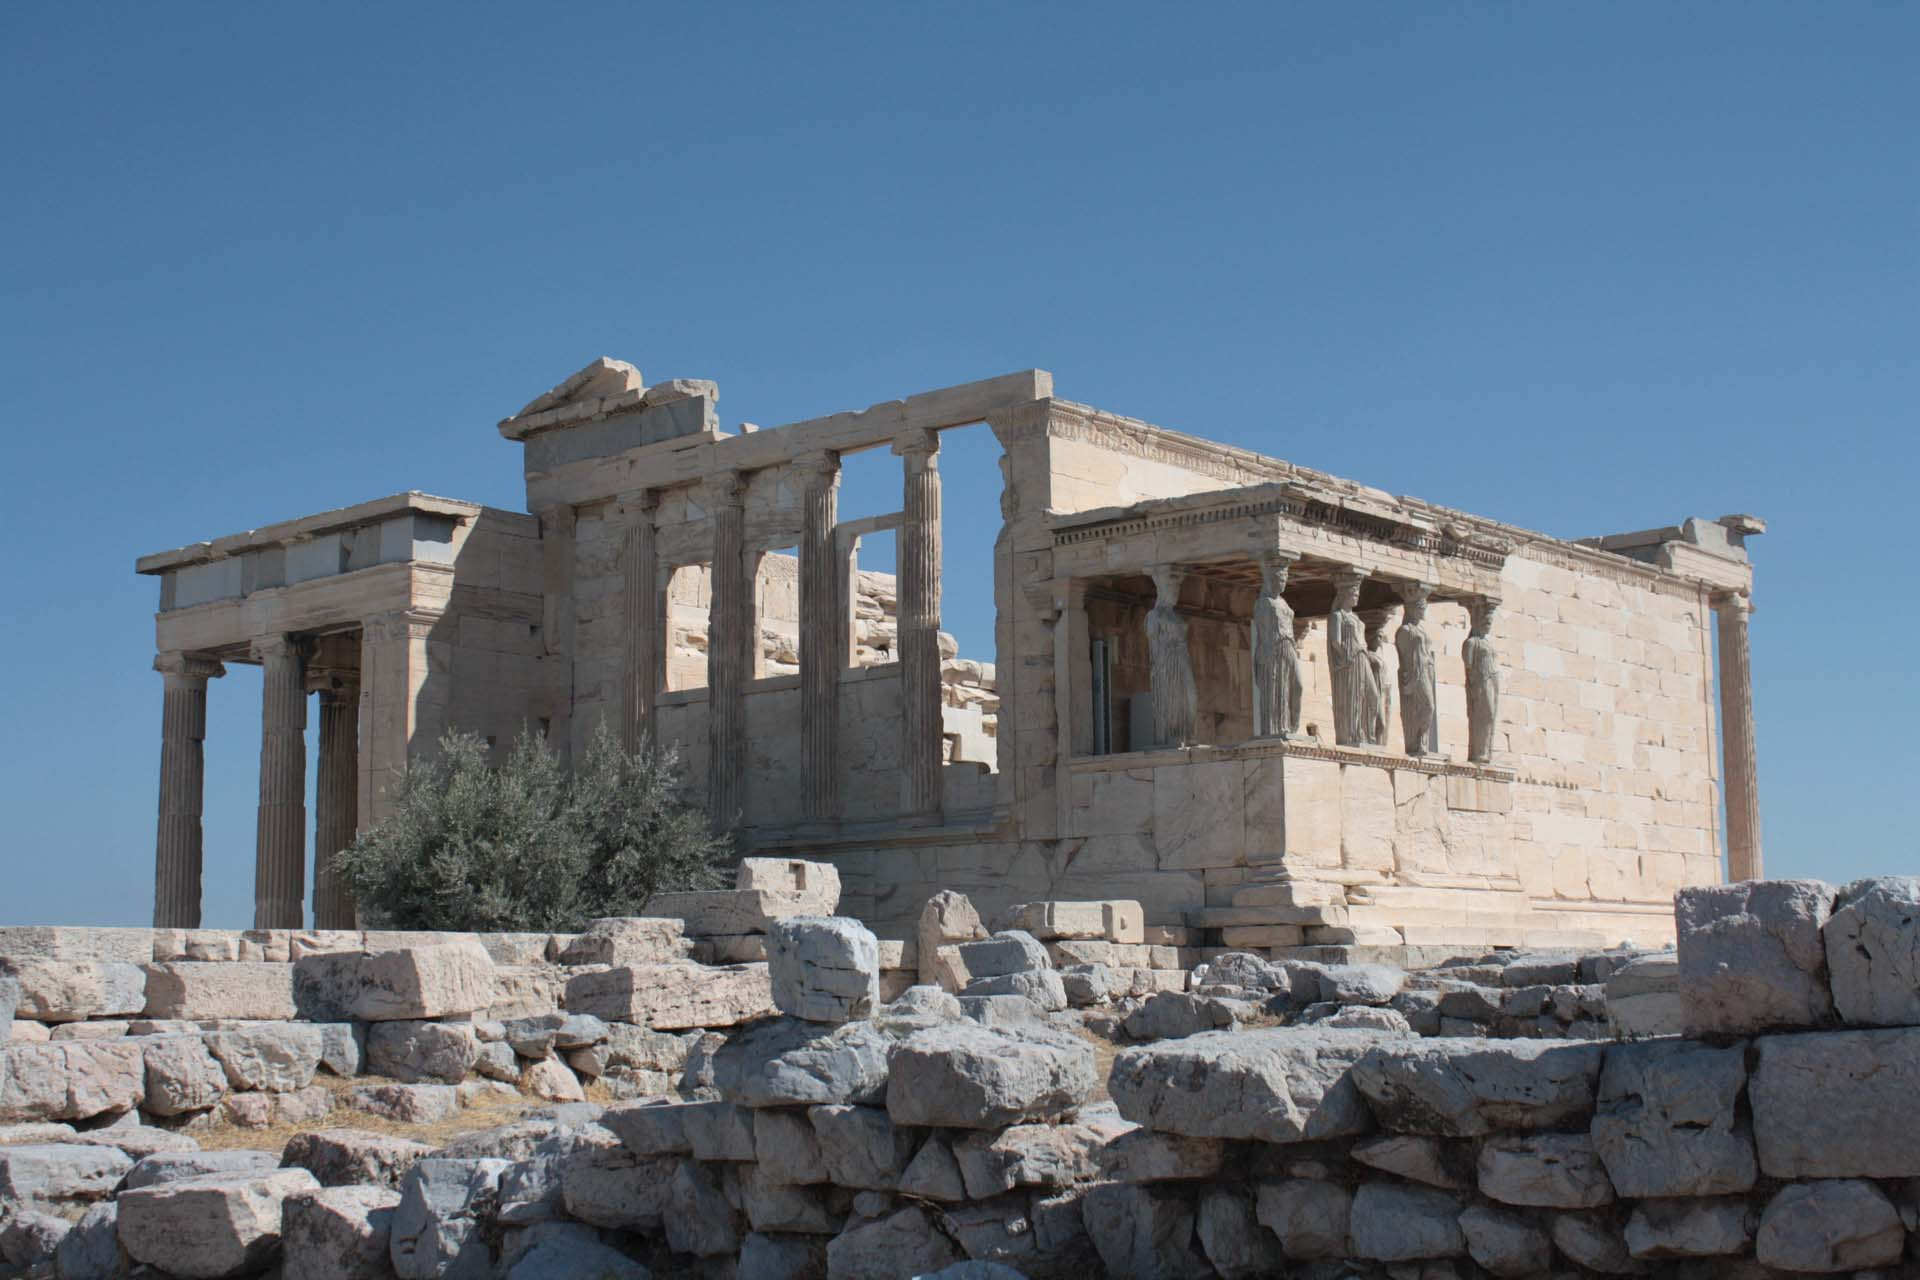 View of Erechtheion Temple on the Athens Acropolis with the caryatid porch